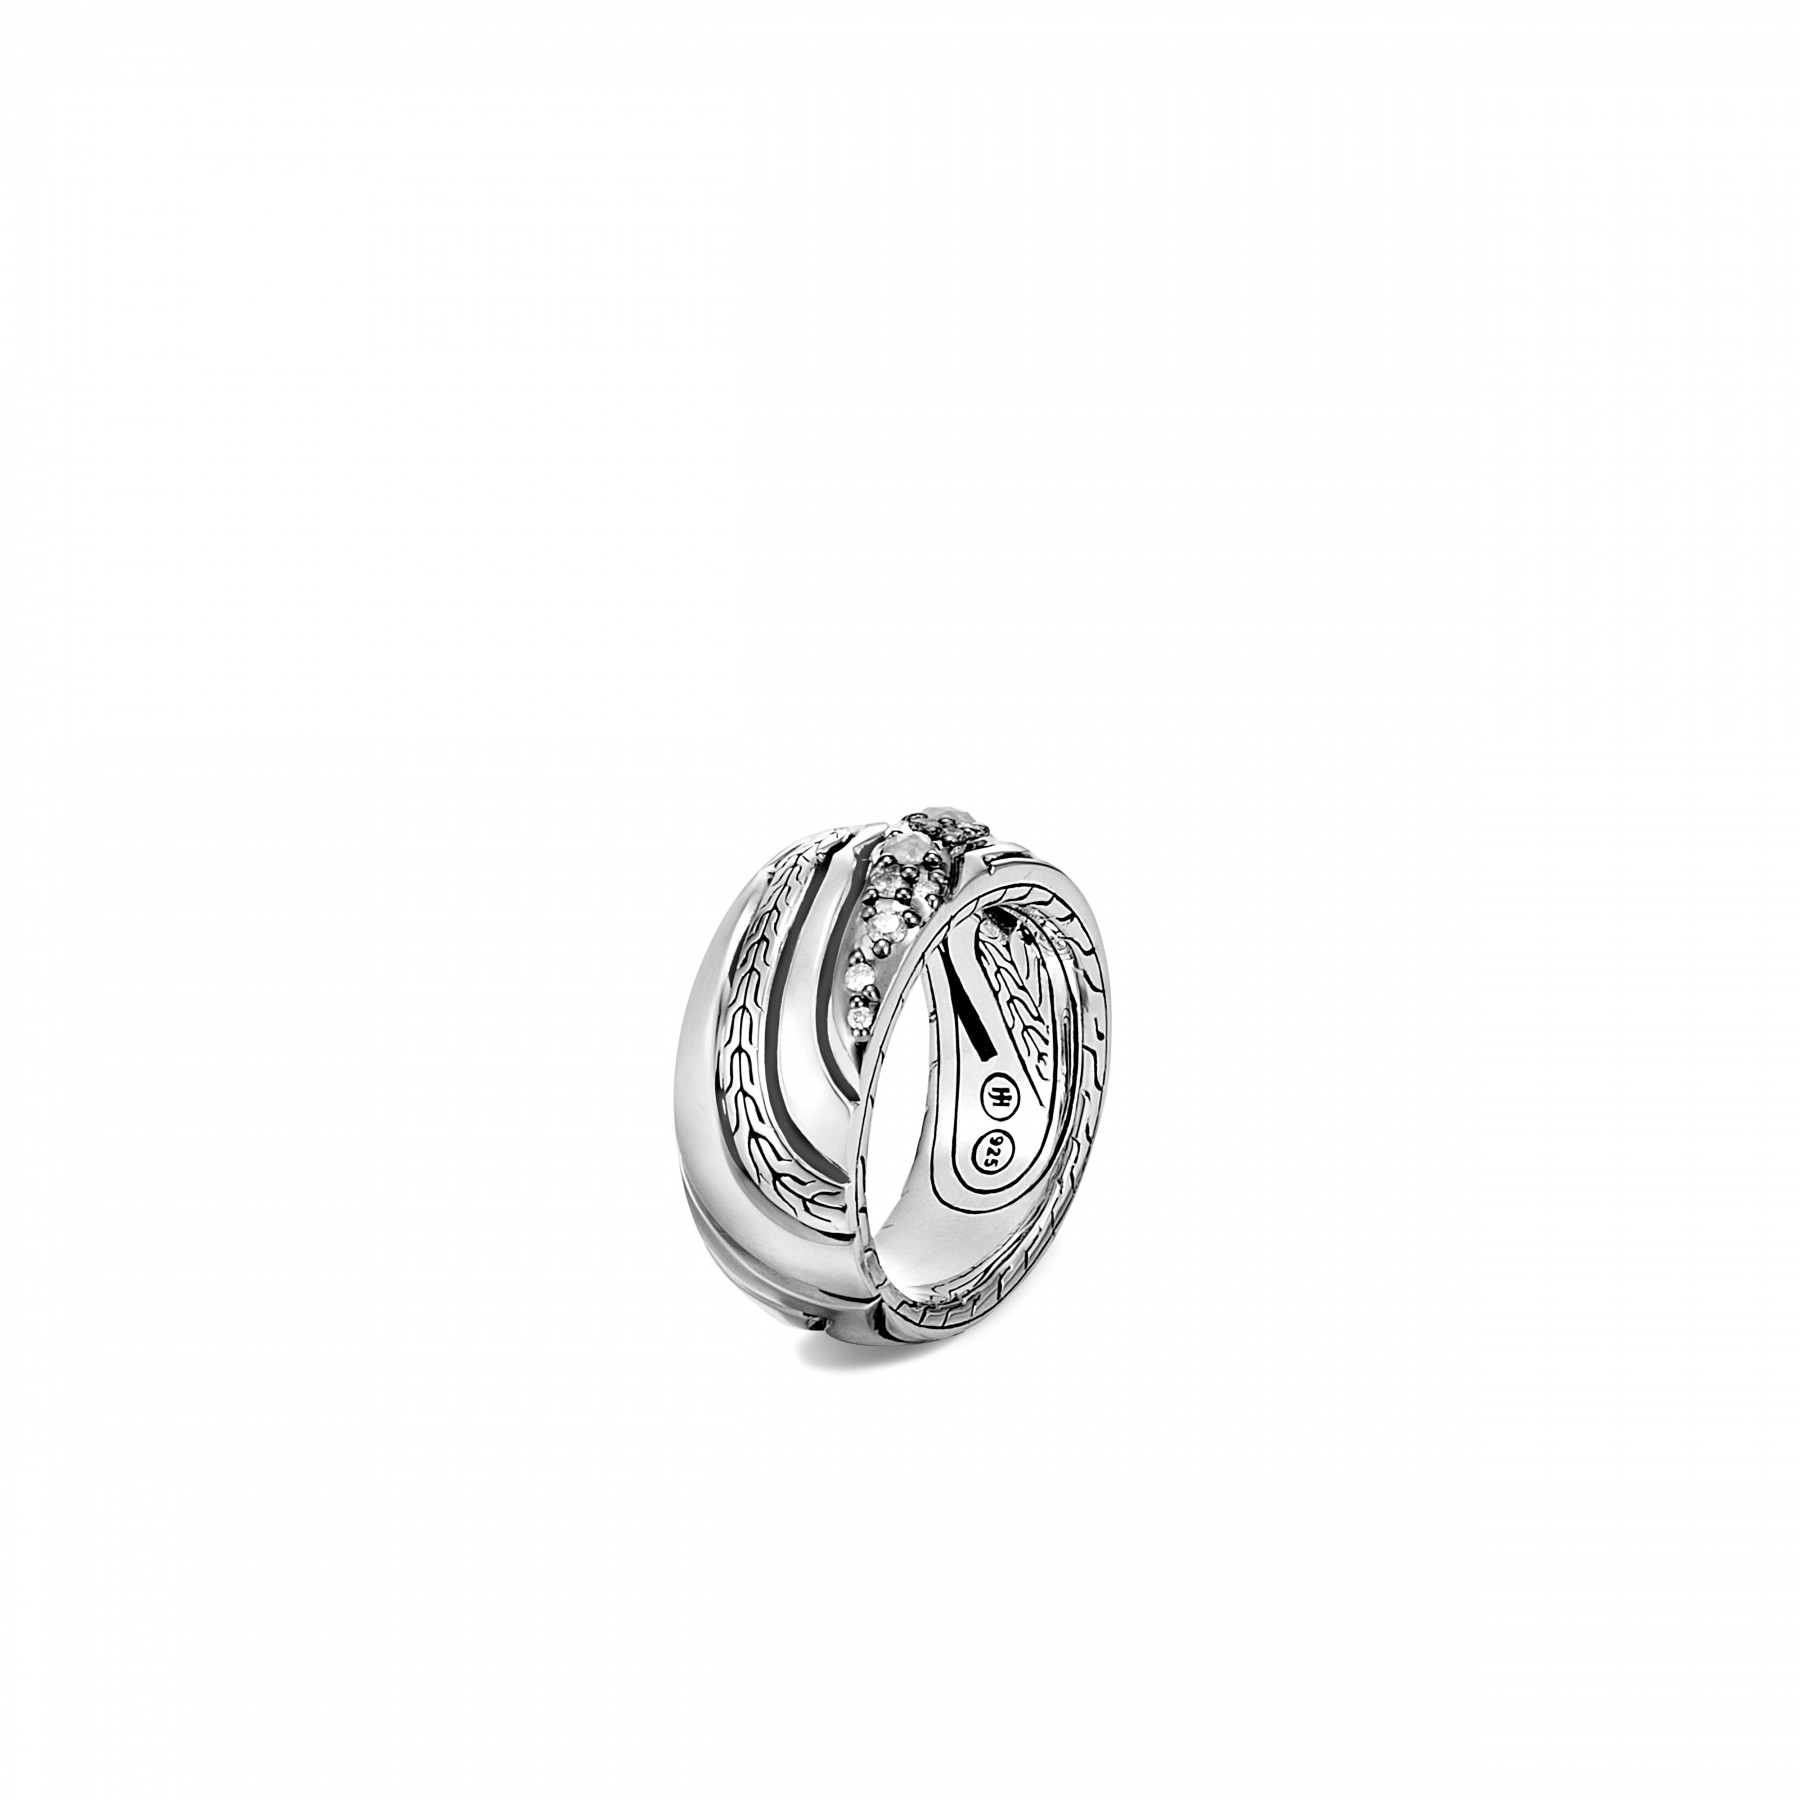 John Hardy Lahar White and Grey Diamond Band Ring front view